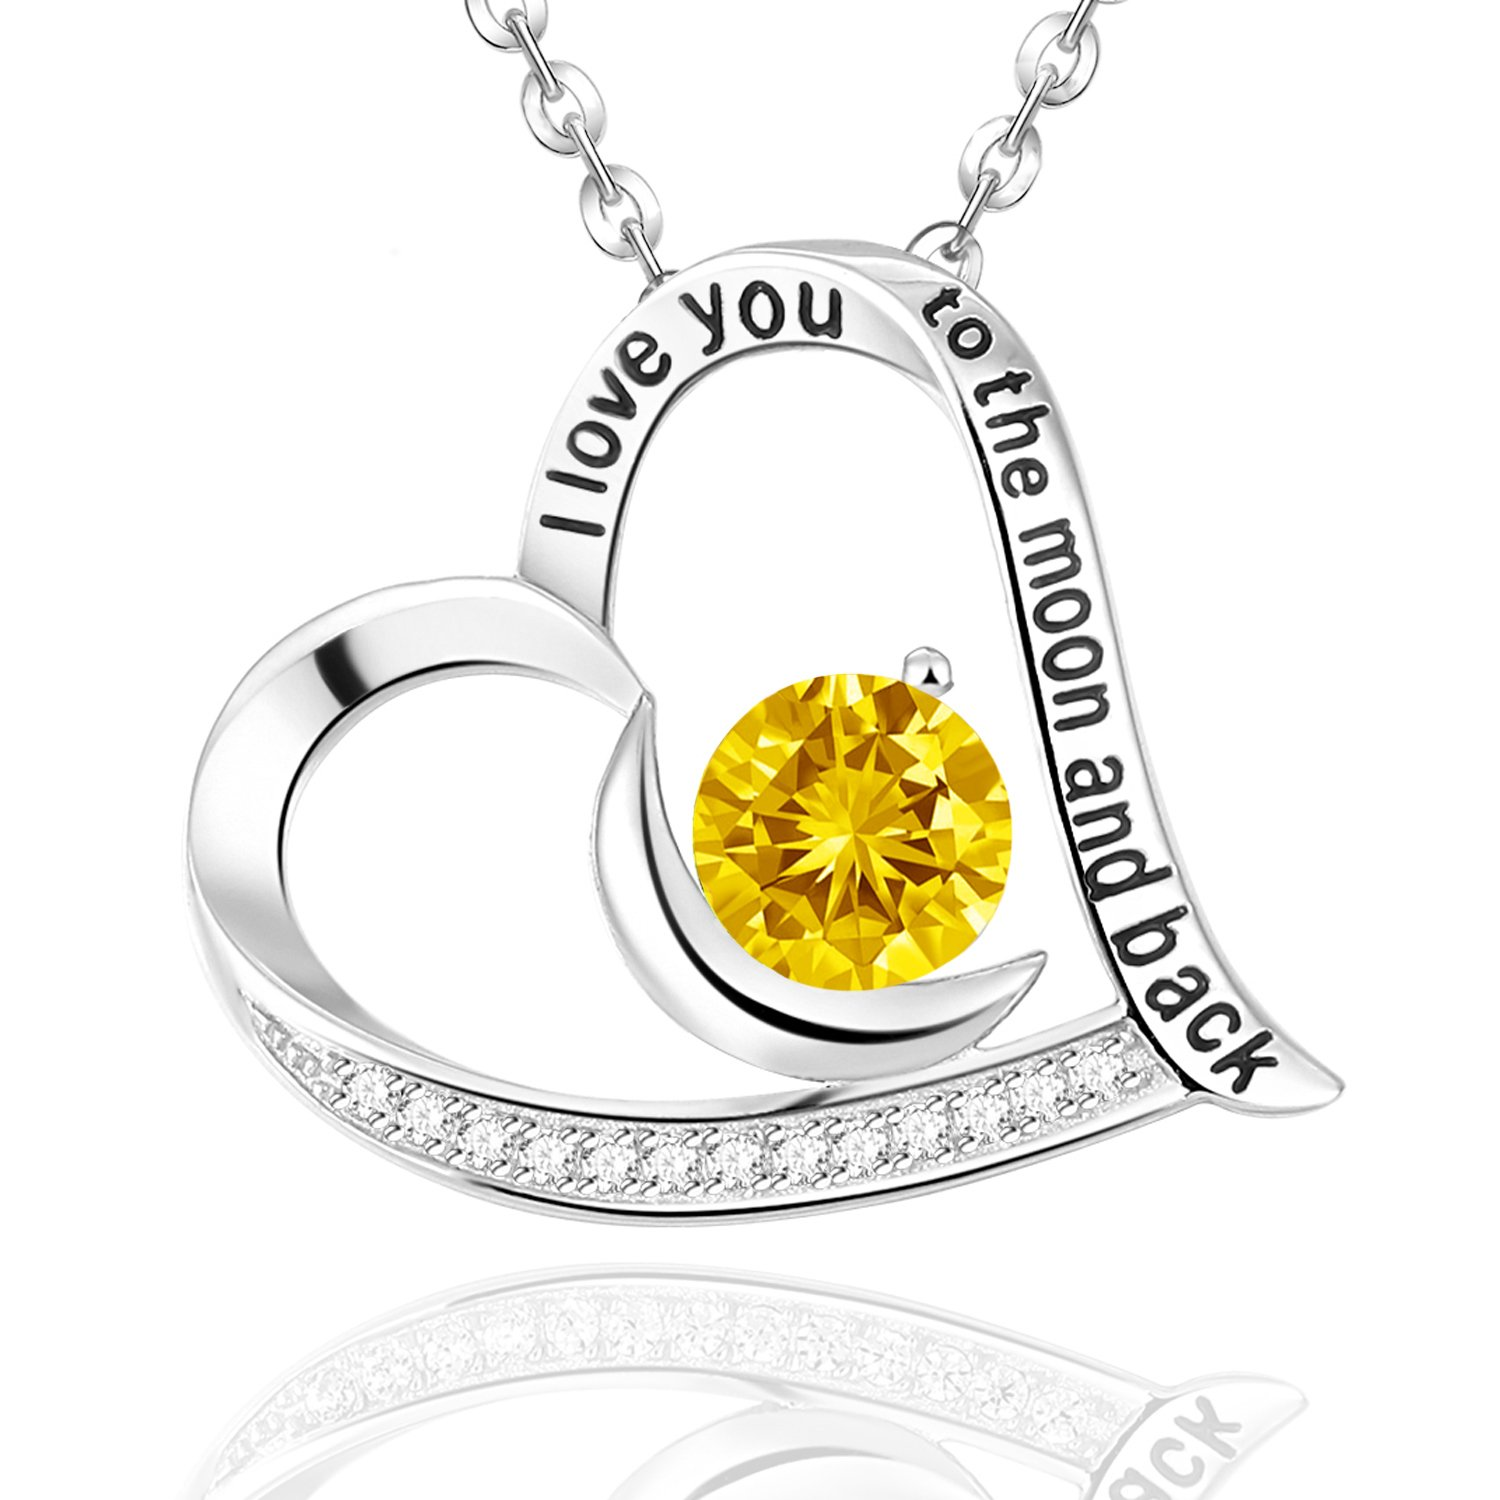 Moon Love Heart November Birthstone Citrine Necklace Sterling Silver Fine Jewelry Birthday Christmas Gift for Her,18